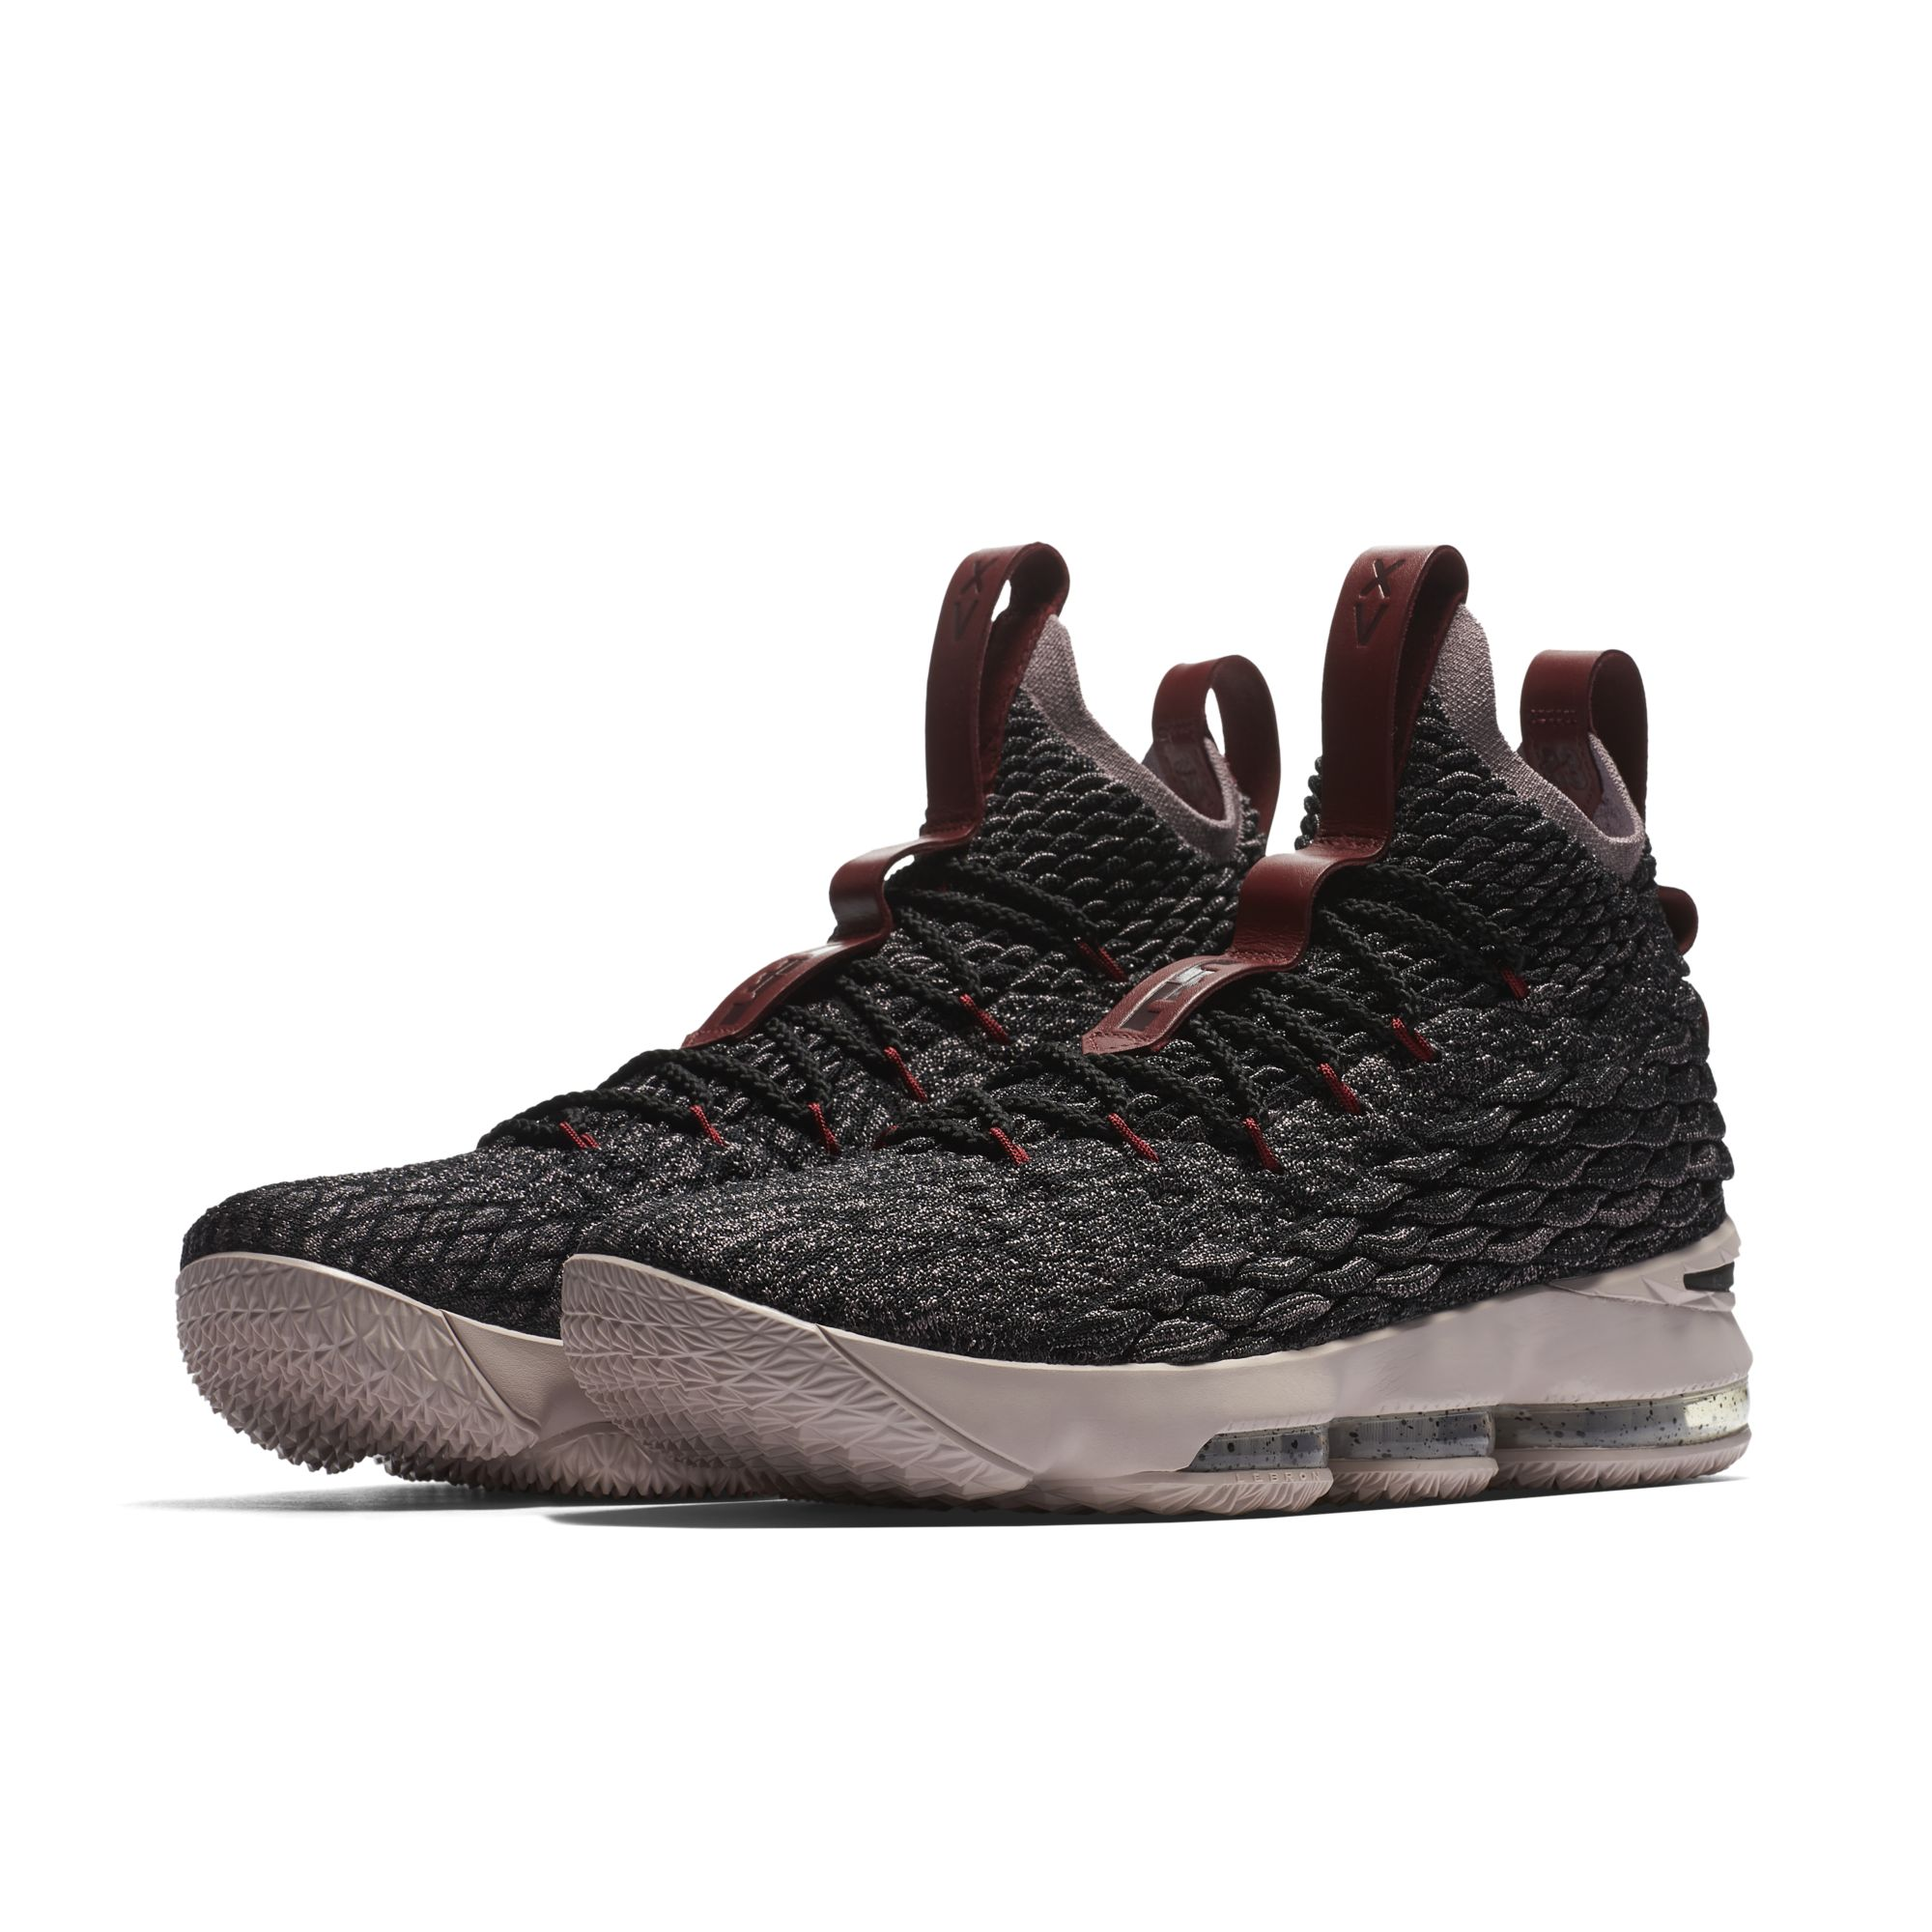 An Official Look at the Nike LeBron 15 'Pride of Ohio ...